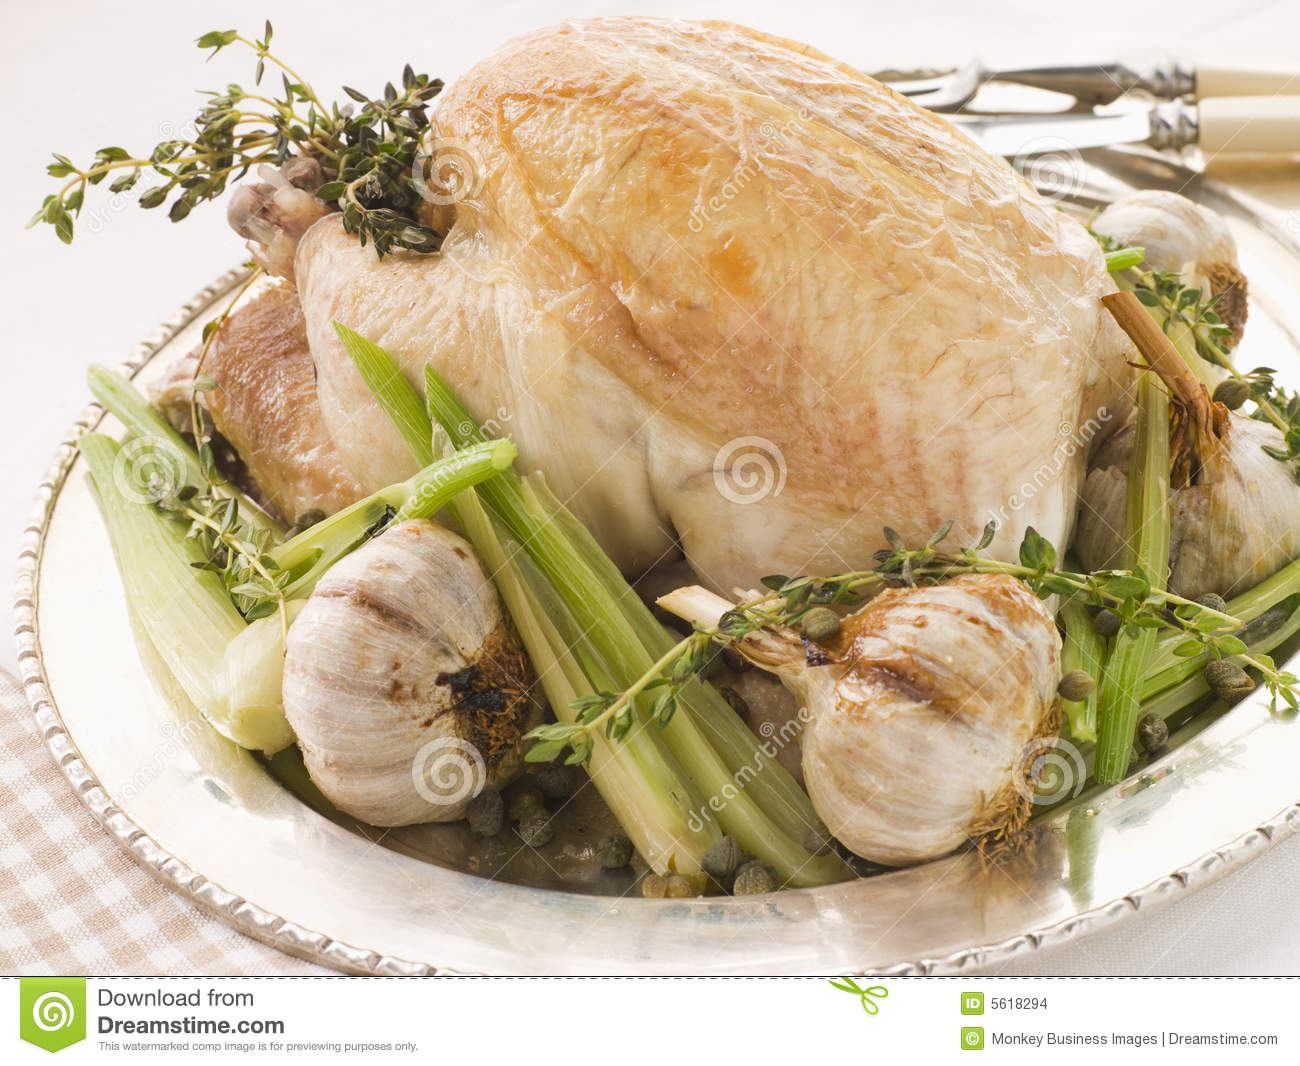 40 Clove Of Garlic Roasted Chicken Stock Images - Image: 5618294